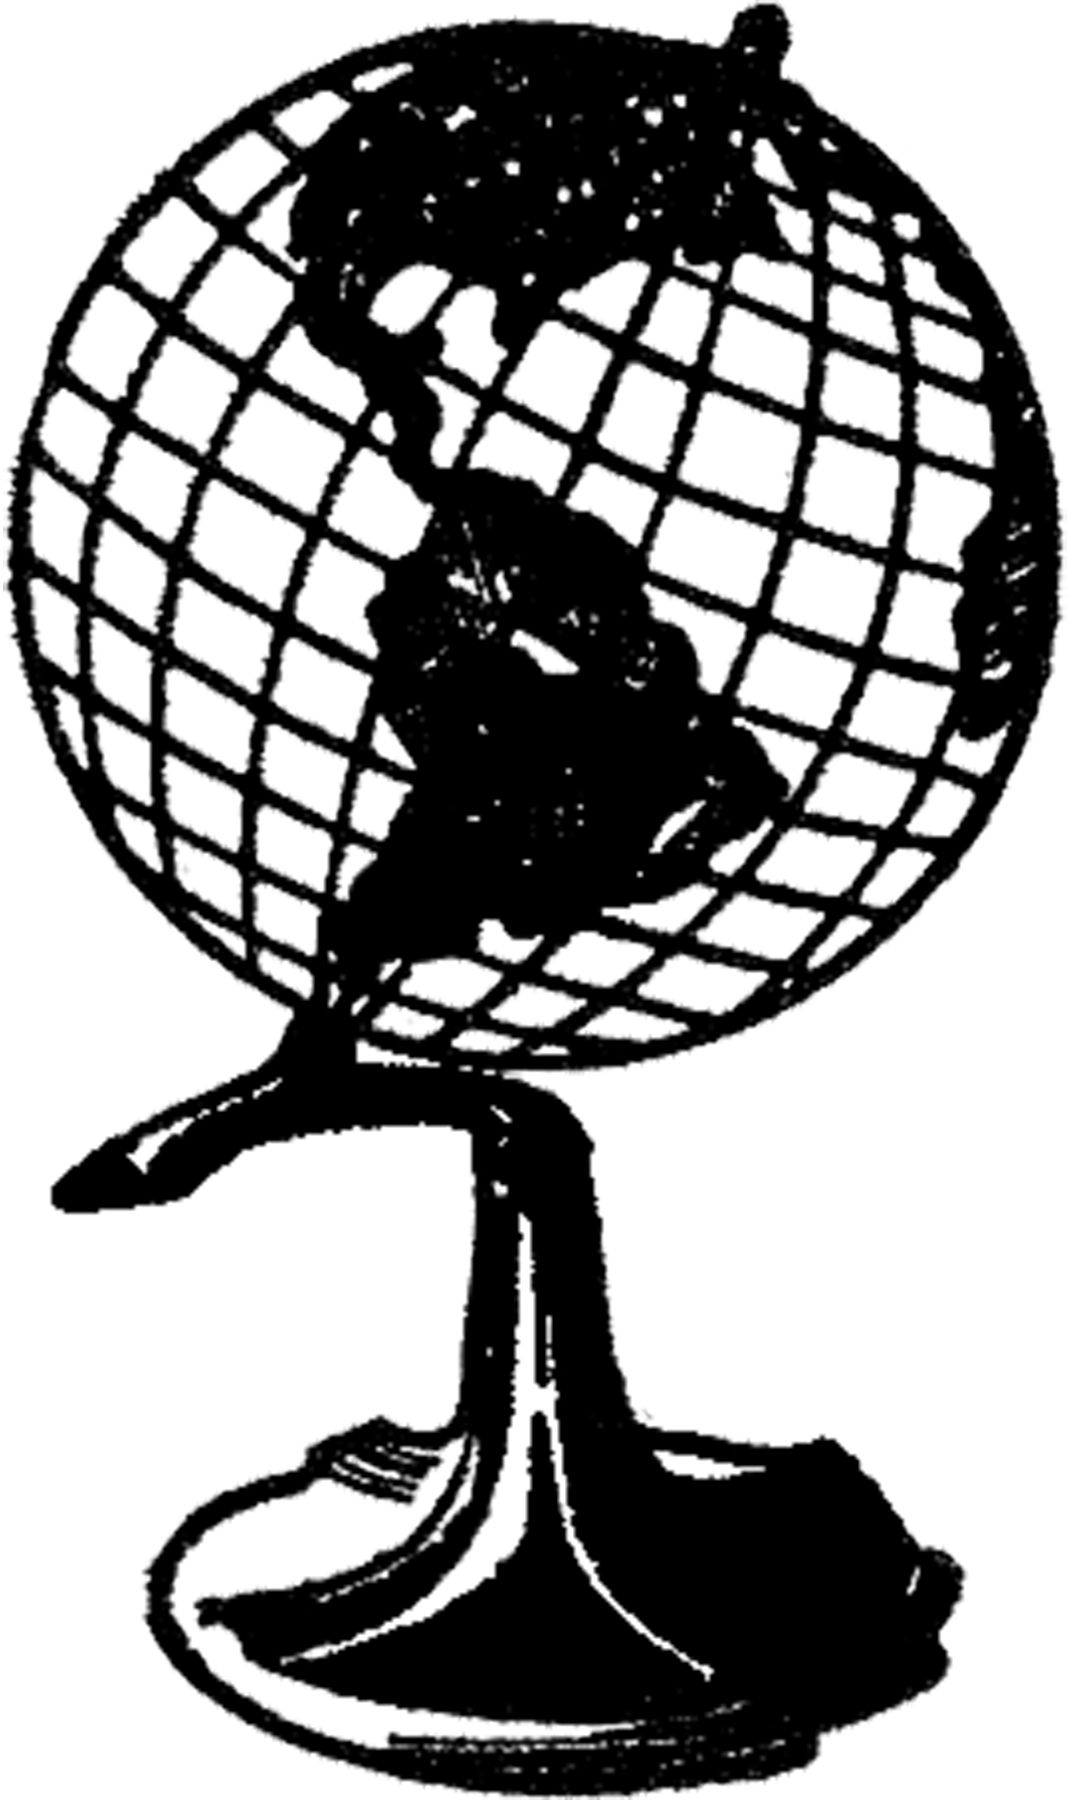 Vintage globe map black and white clipart image black and white download Retro Globe Image! | Sketches | Globe image, Graphics fairy ... image black and white download